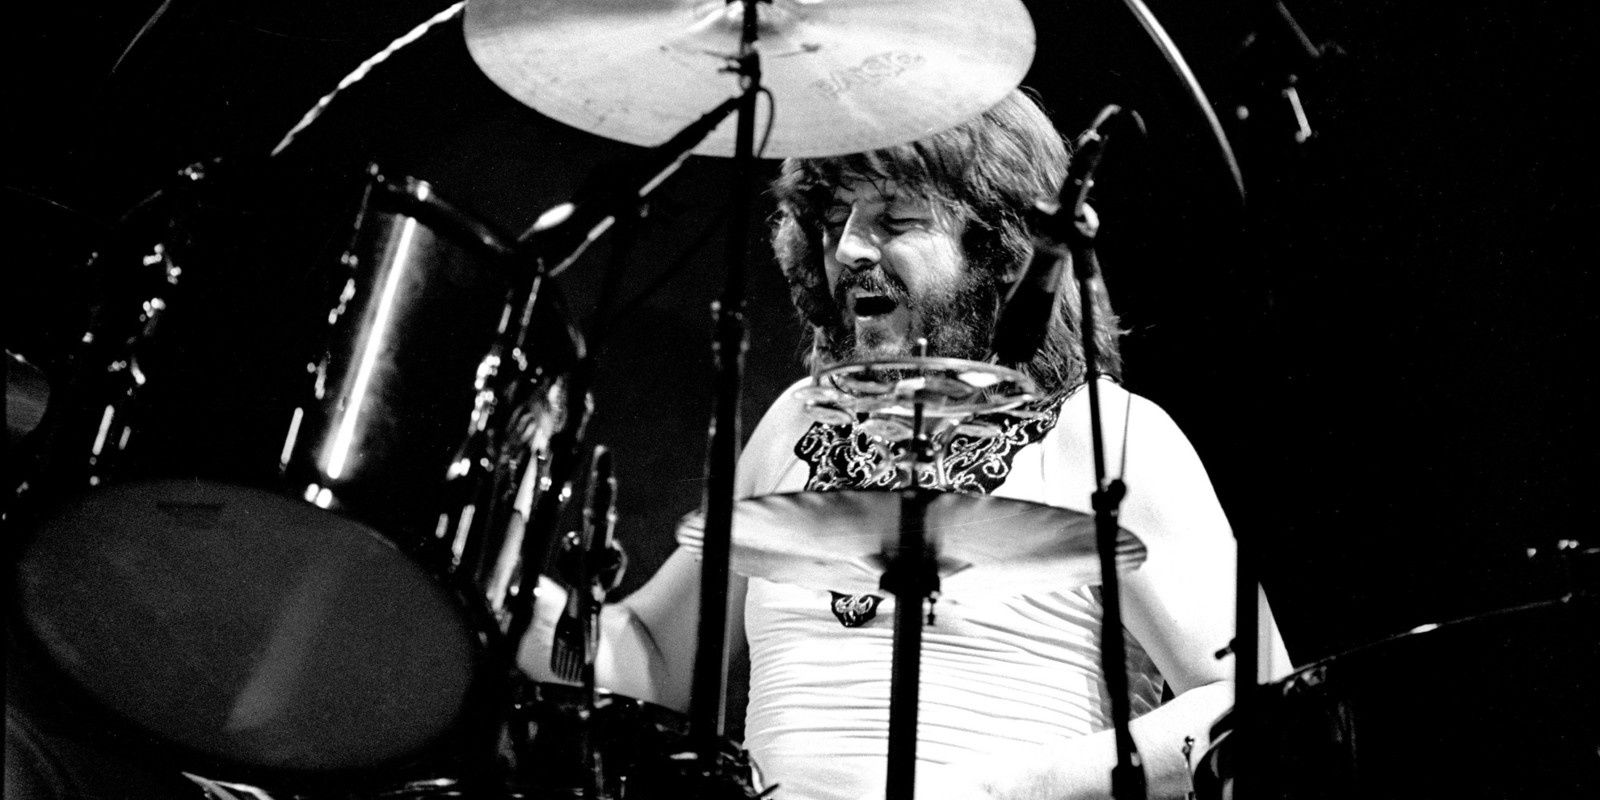 John Bonham, drummer of Led Zeppelin - Crédits: Redferns